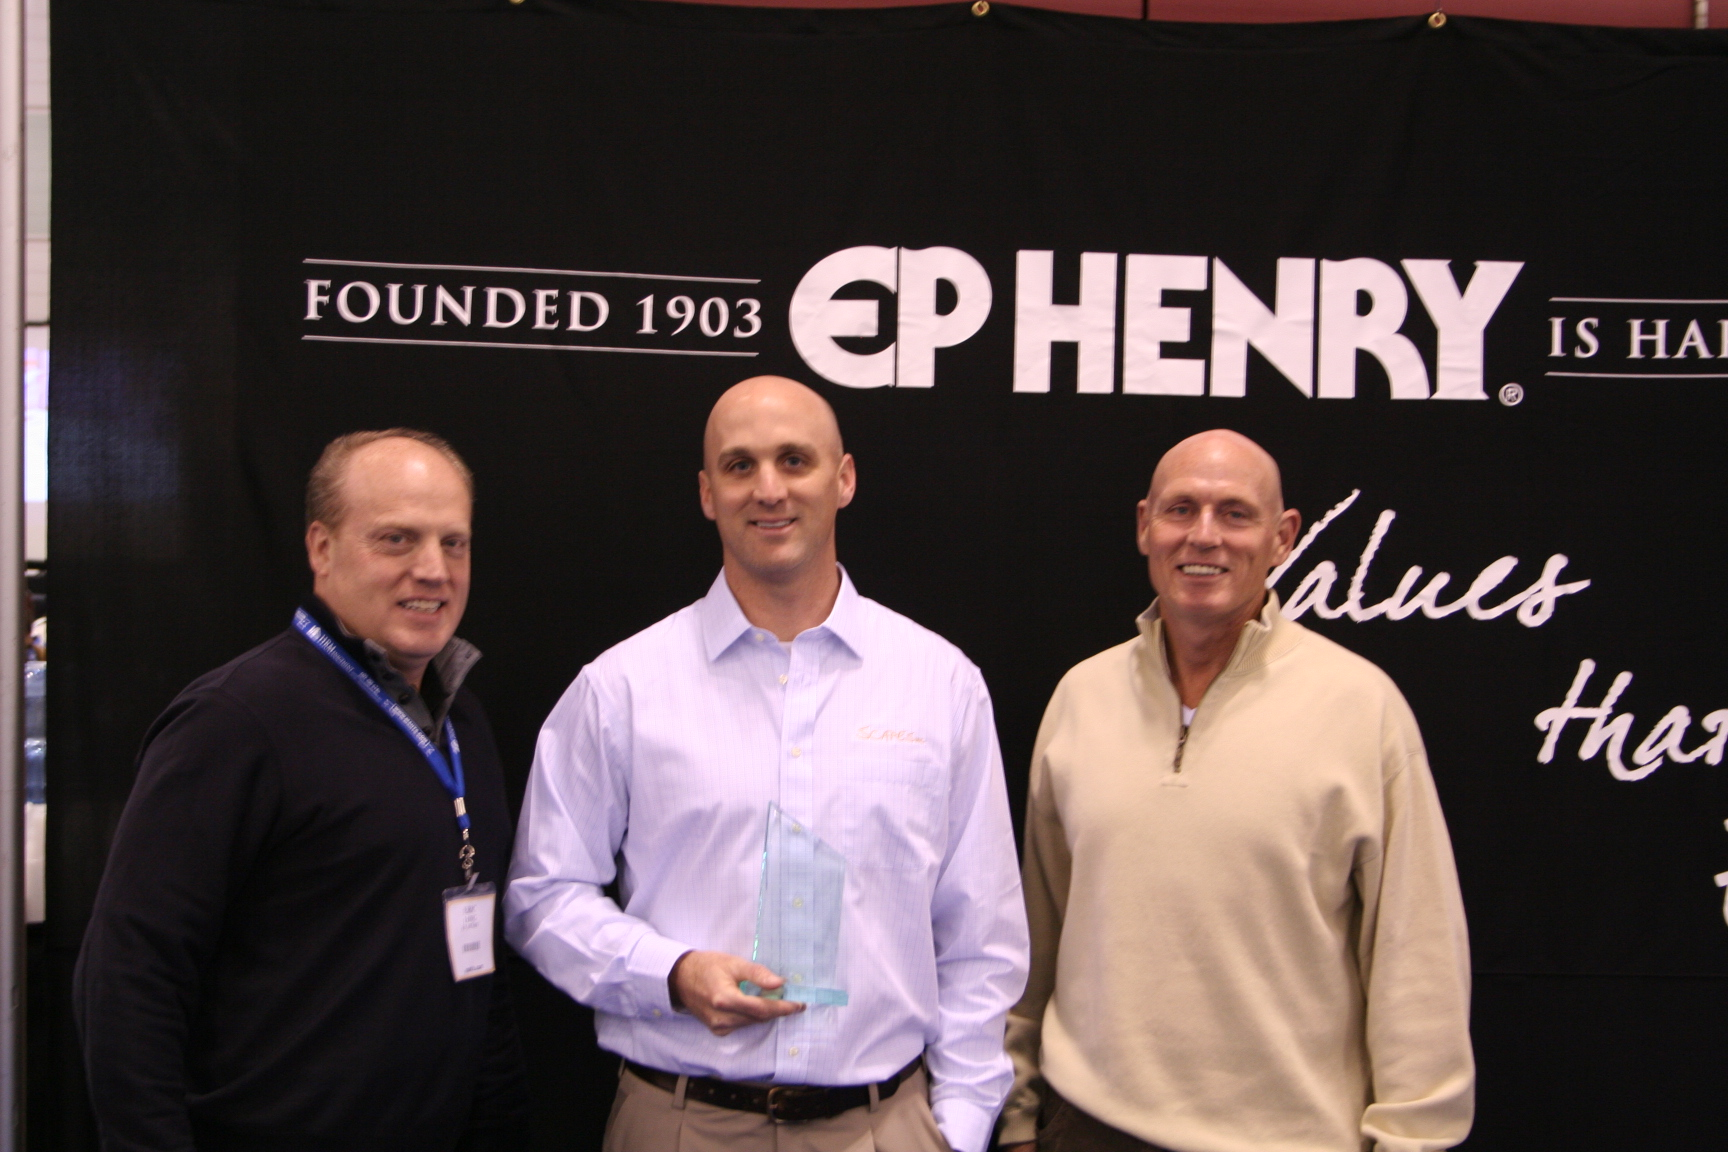 Winner Jeff Crandell from Scapes, Inc. accepts his award with representatives from EP Henry.